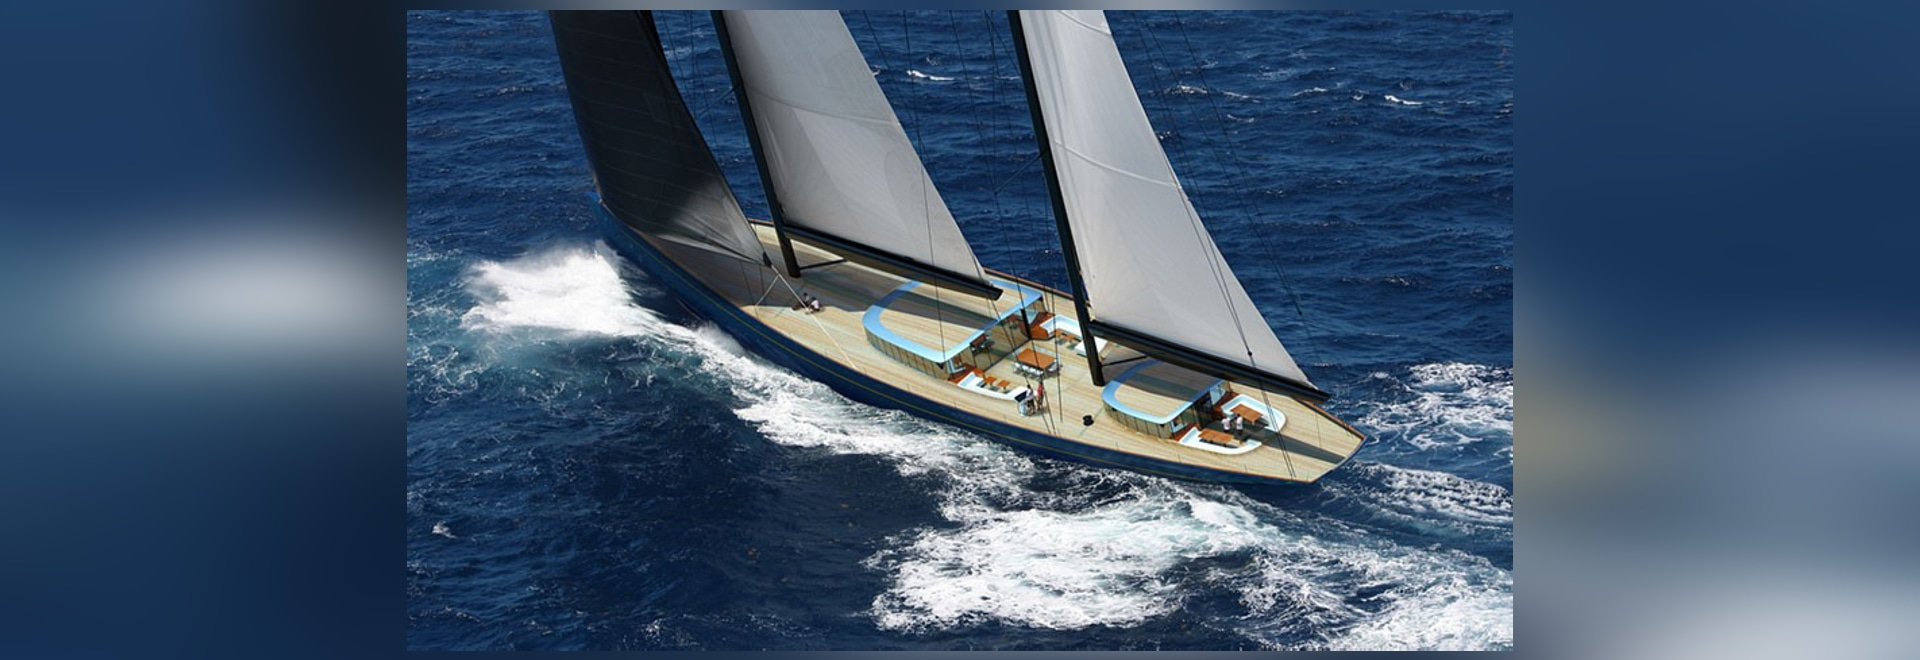 the 70 meter sailing yacht includes two glass deckhouses